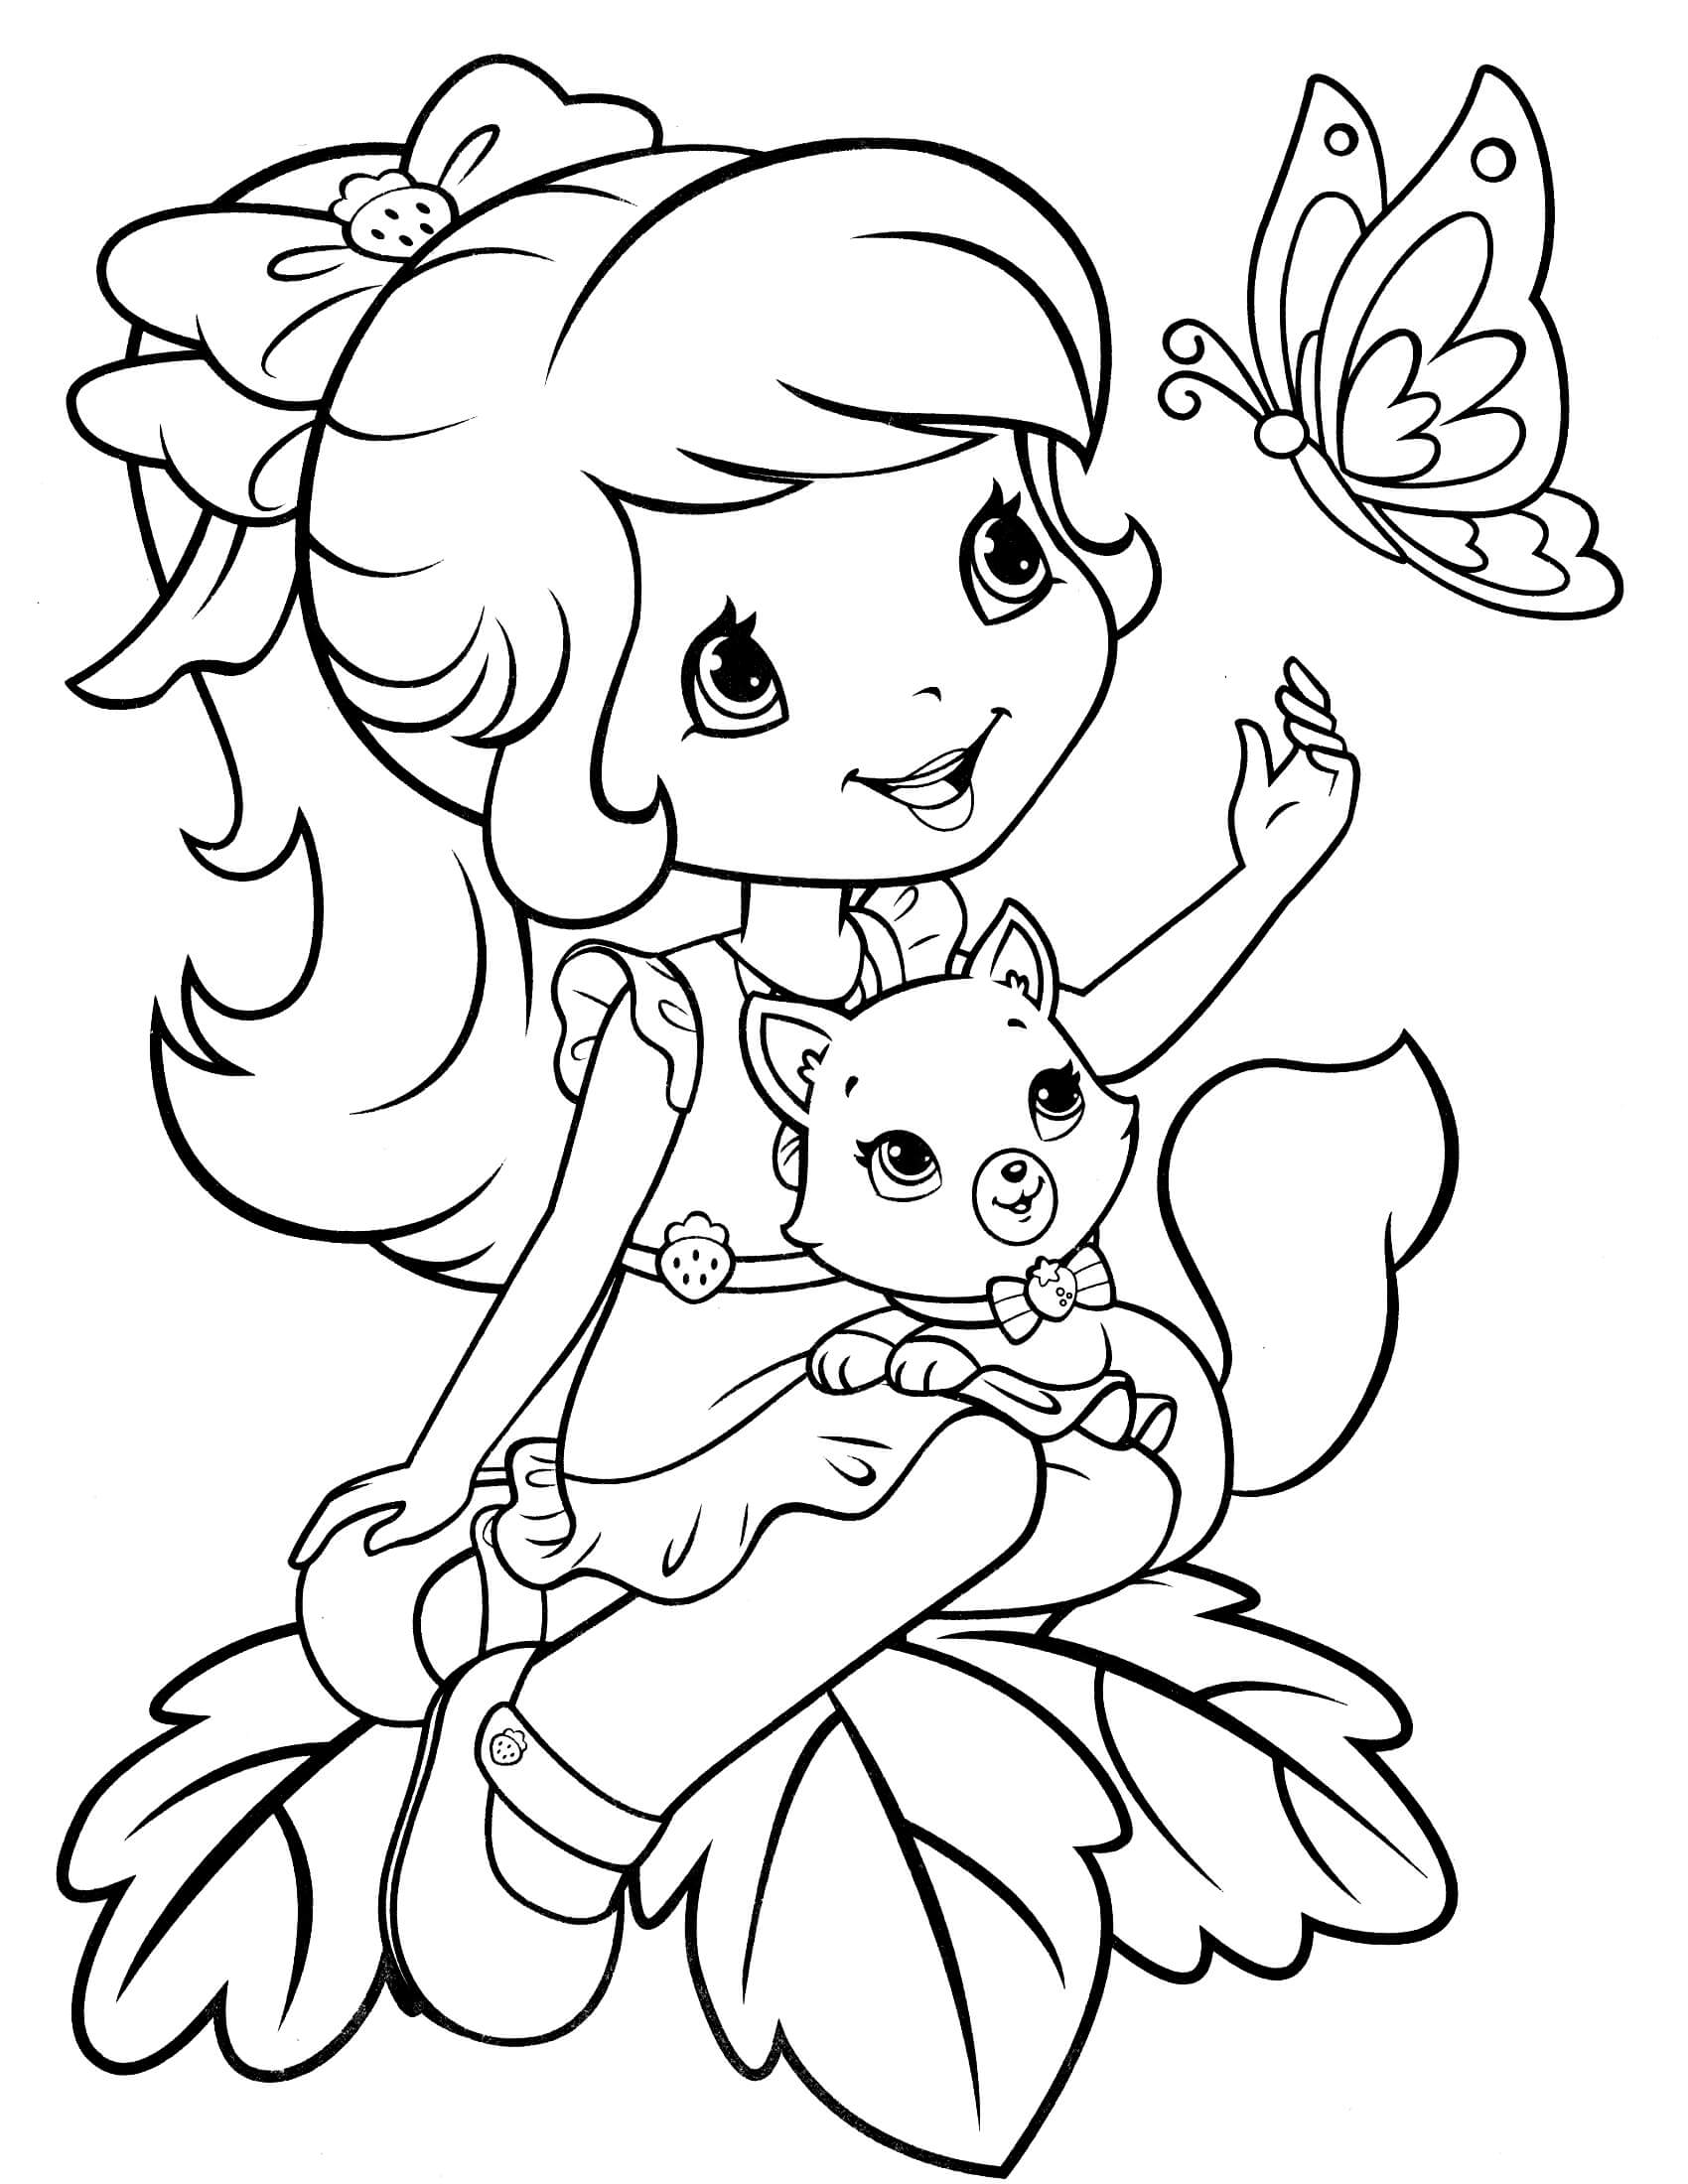 strawberry shortcake pictures to color strawberry shortcake 52 coloringcolorcom strawberry pictures to color shortcake